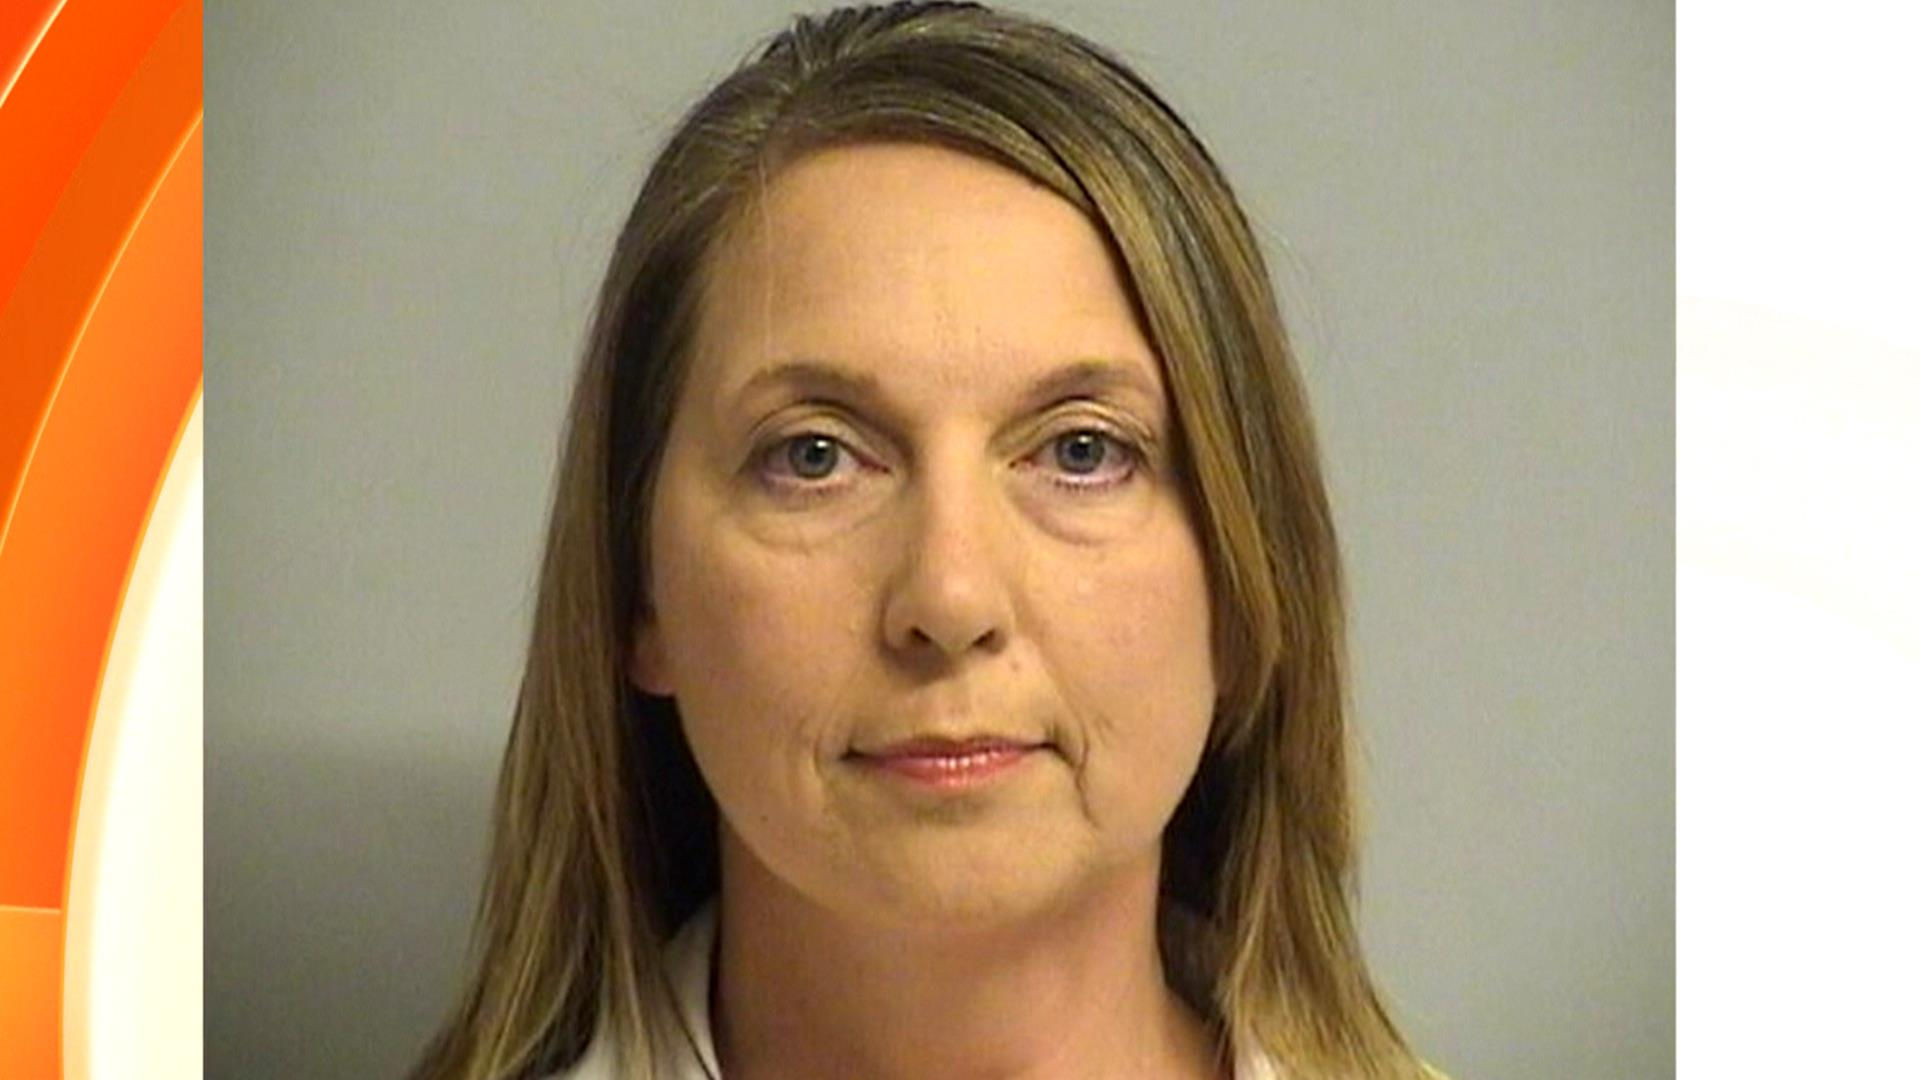 Terence Crutcher Shooting: Tulsa County District Attorney Charges Officer Shelby With Manslaughter